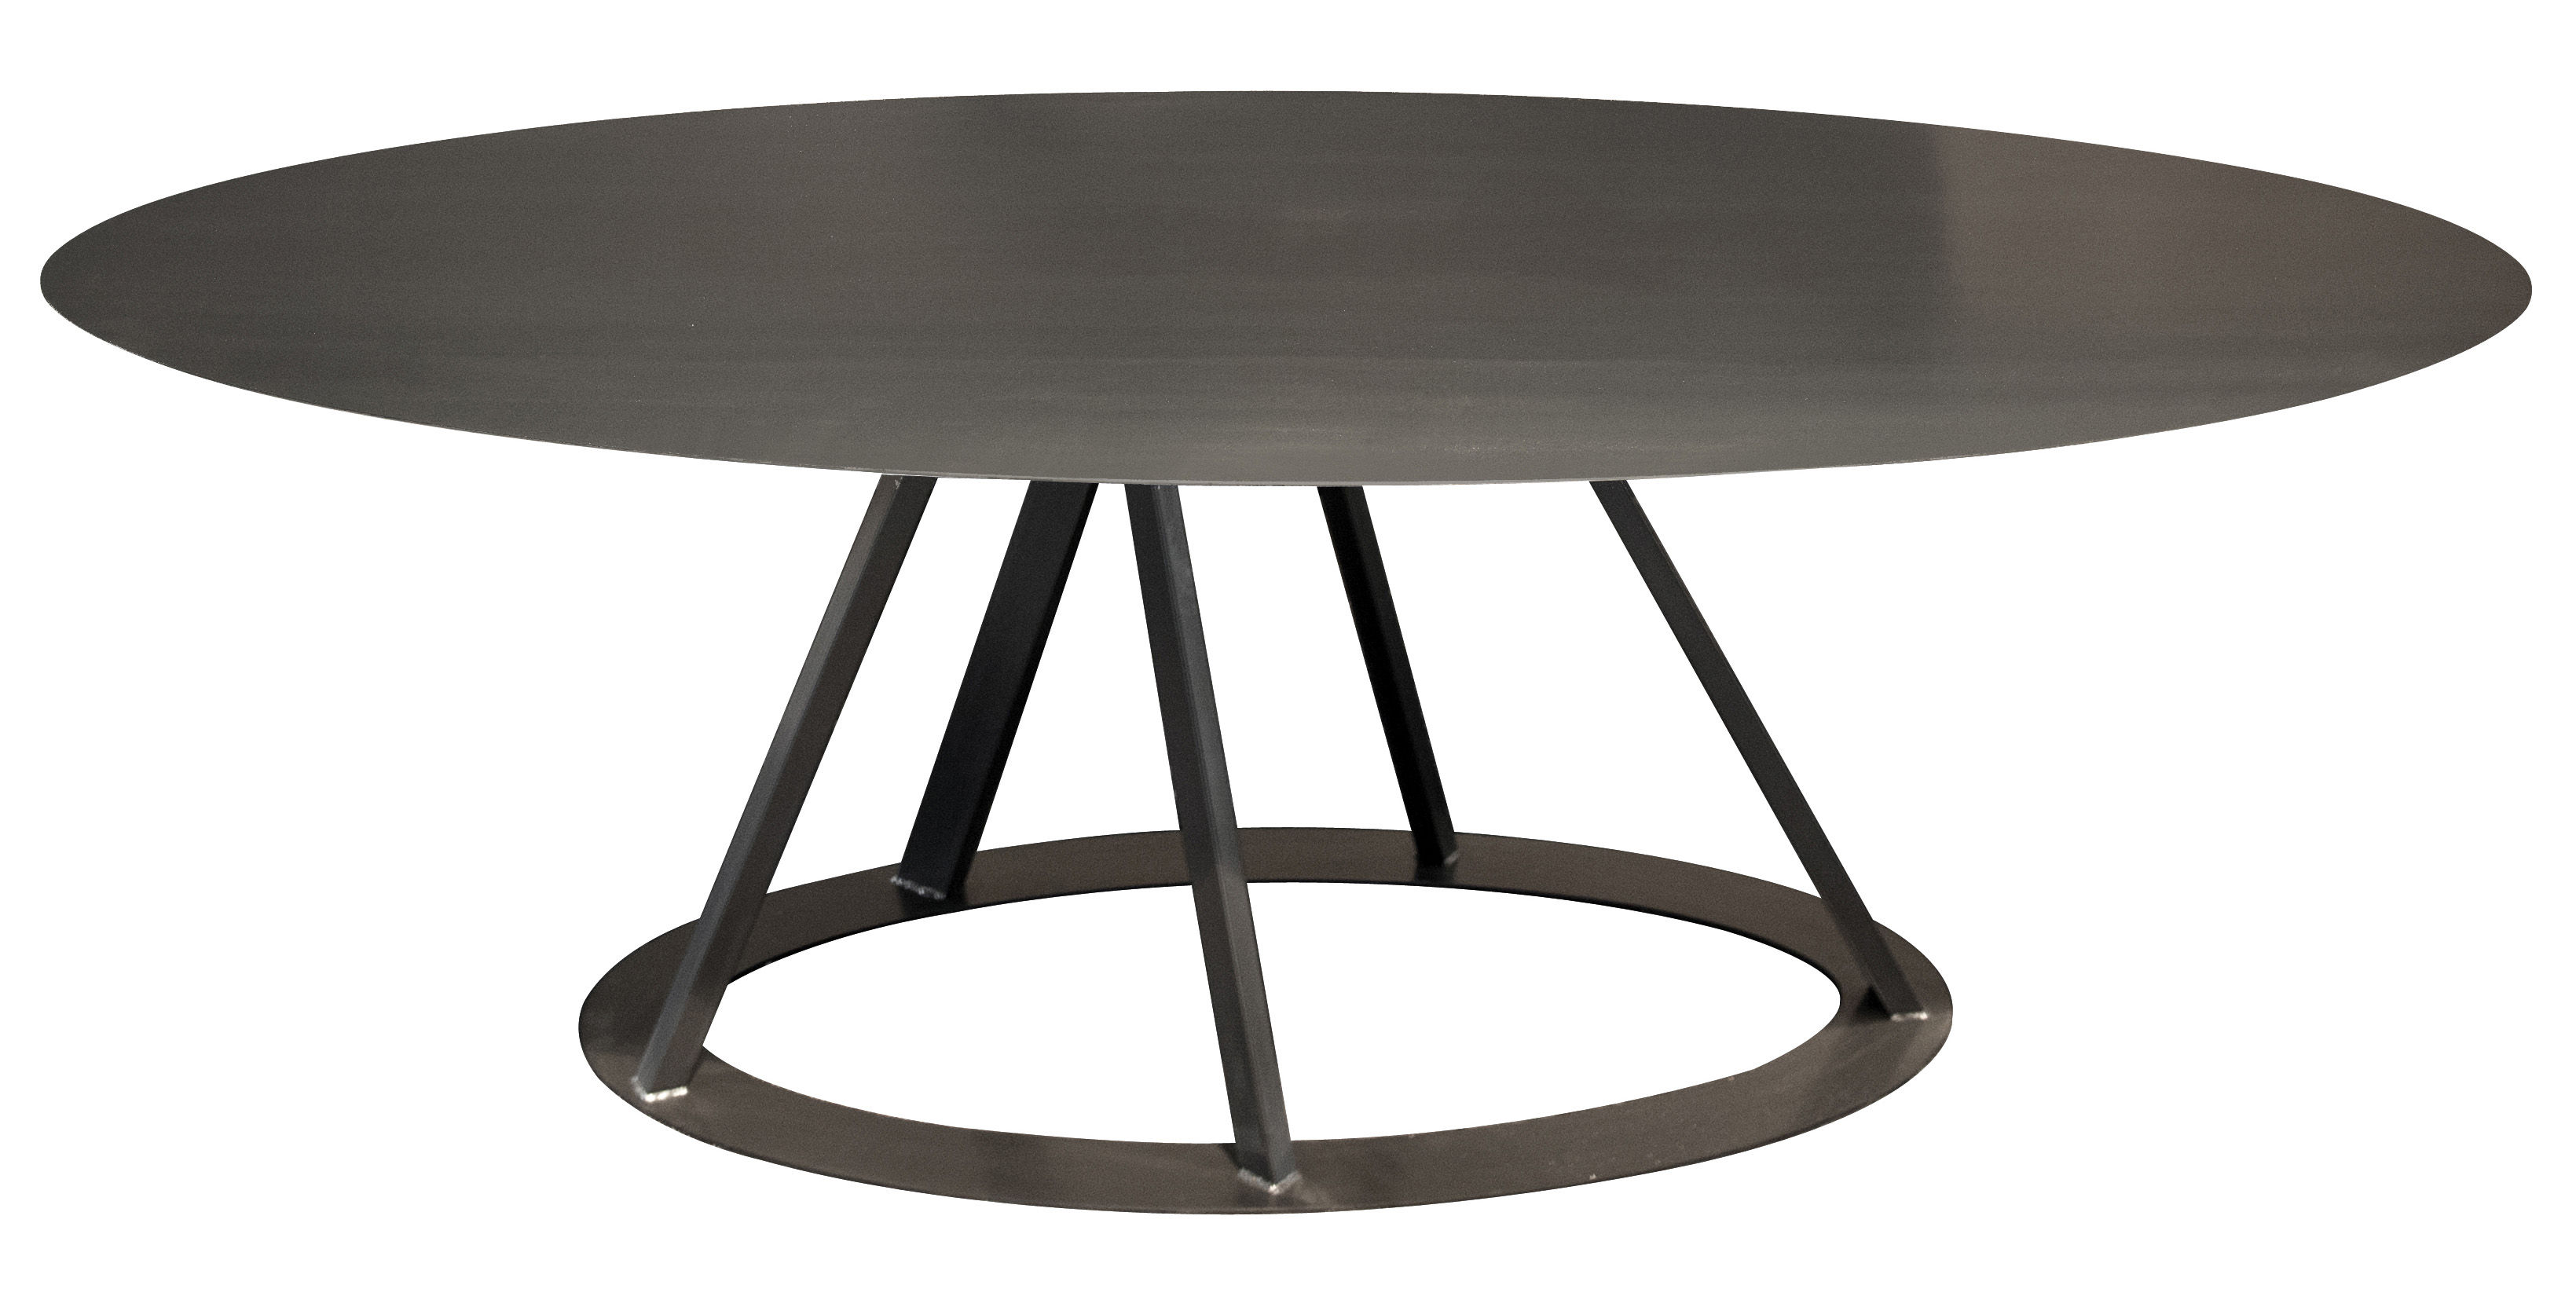 big irony table 220 x 110 cm oval table black copper by zeus. Black Bedroom Furniture Sets. Home Design Ideas